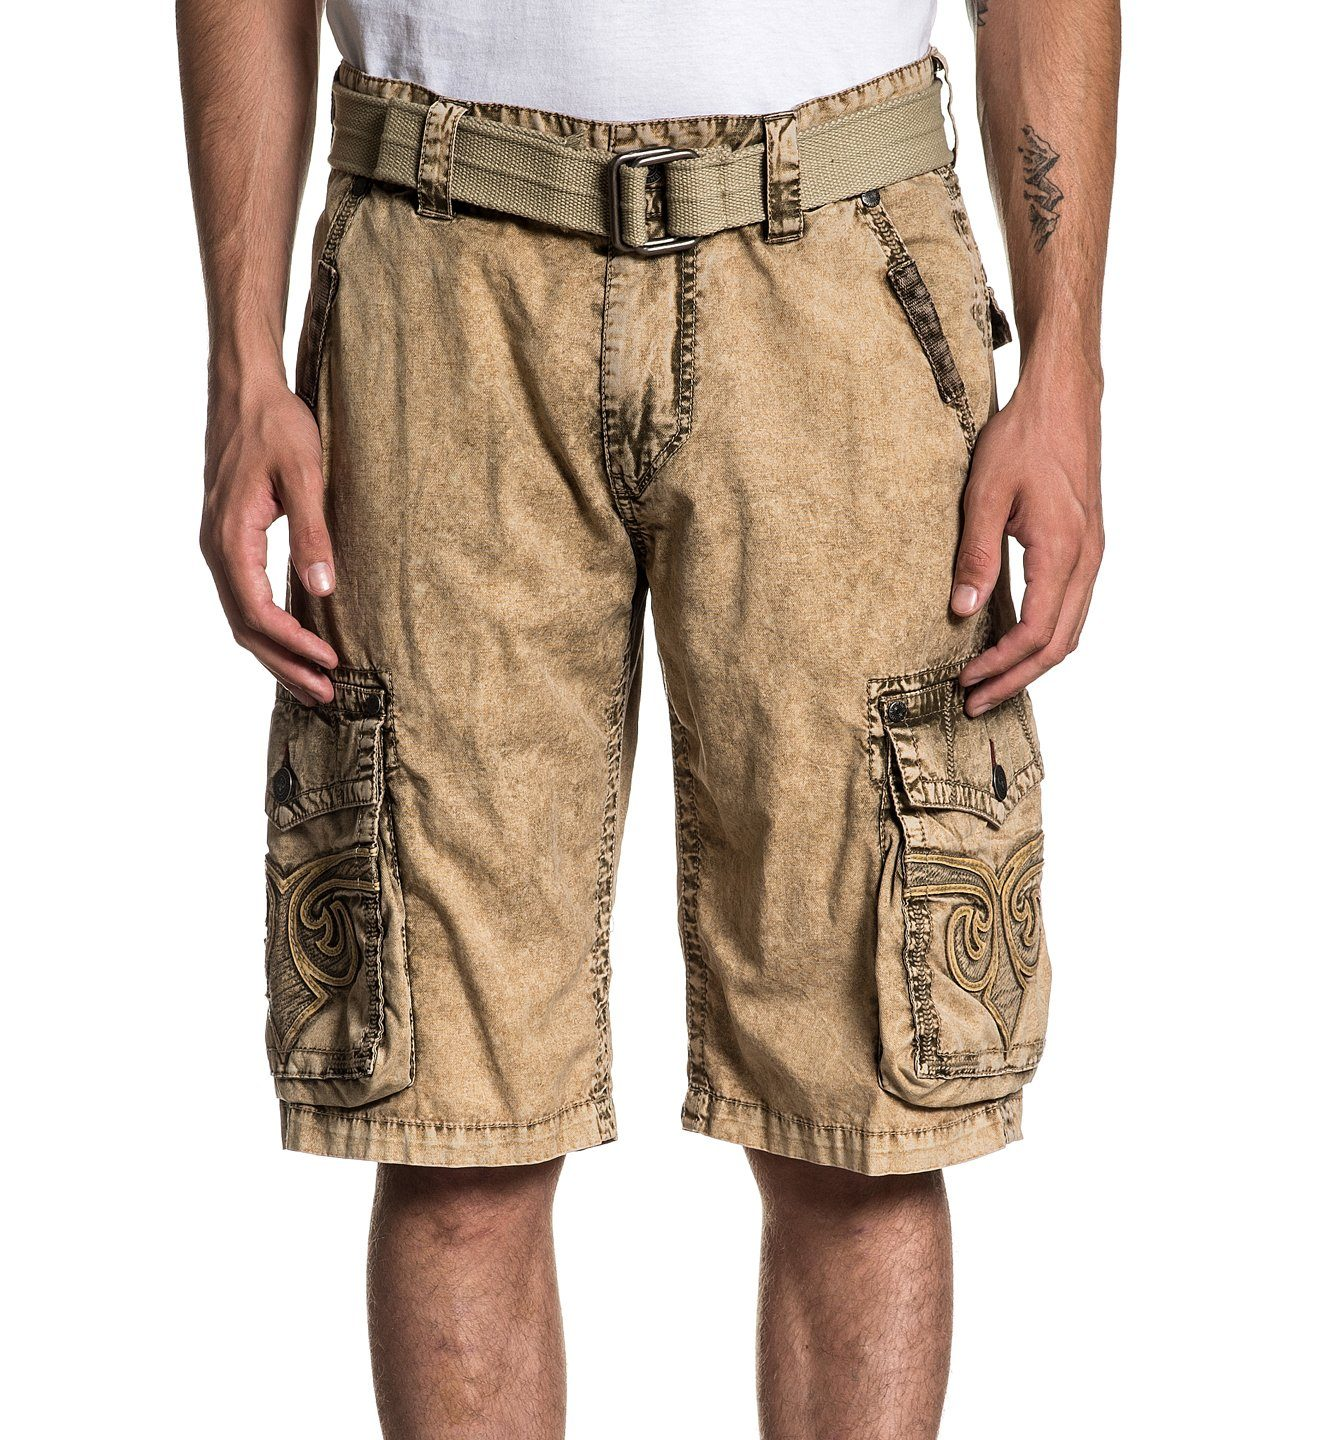 c6f762d655 Revival Cargo Short - Mens Shorts And Boardshorts - Affliction Clothing